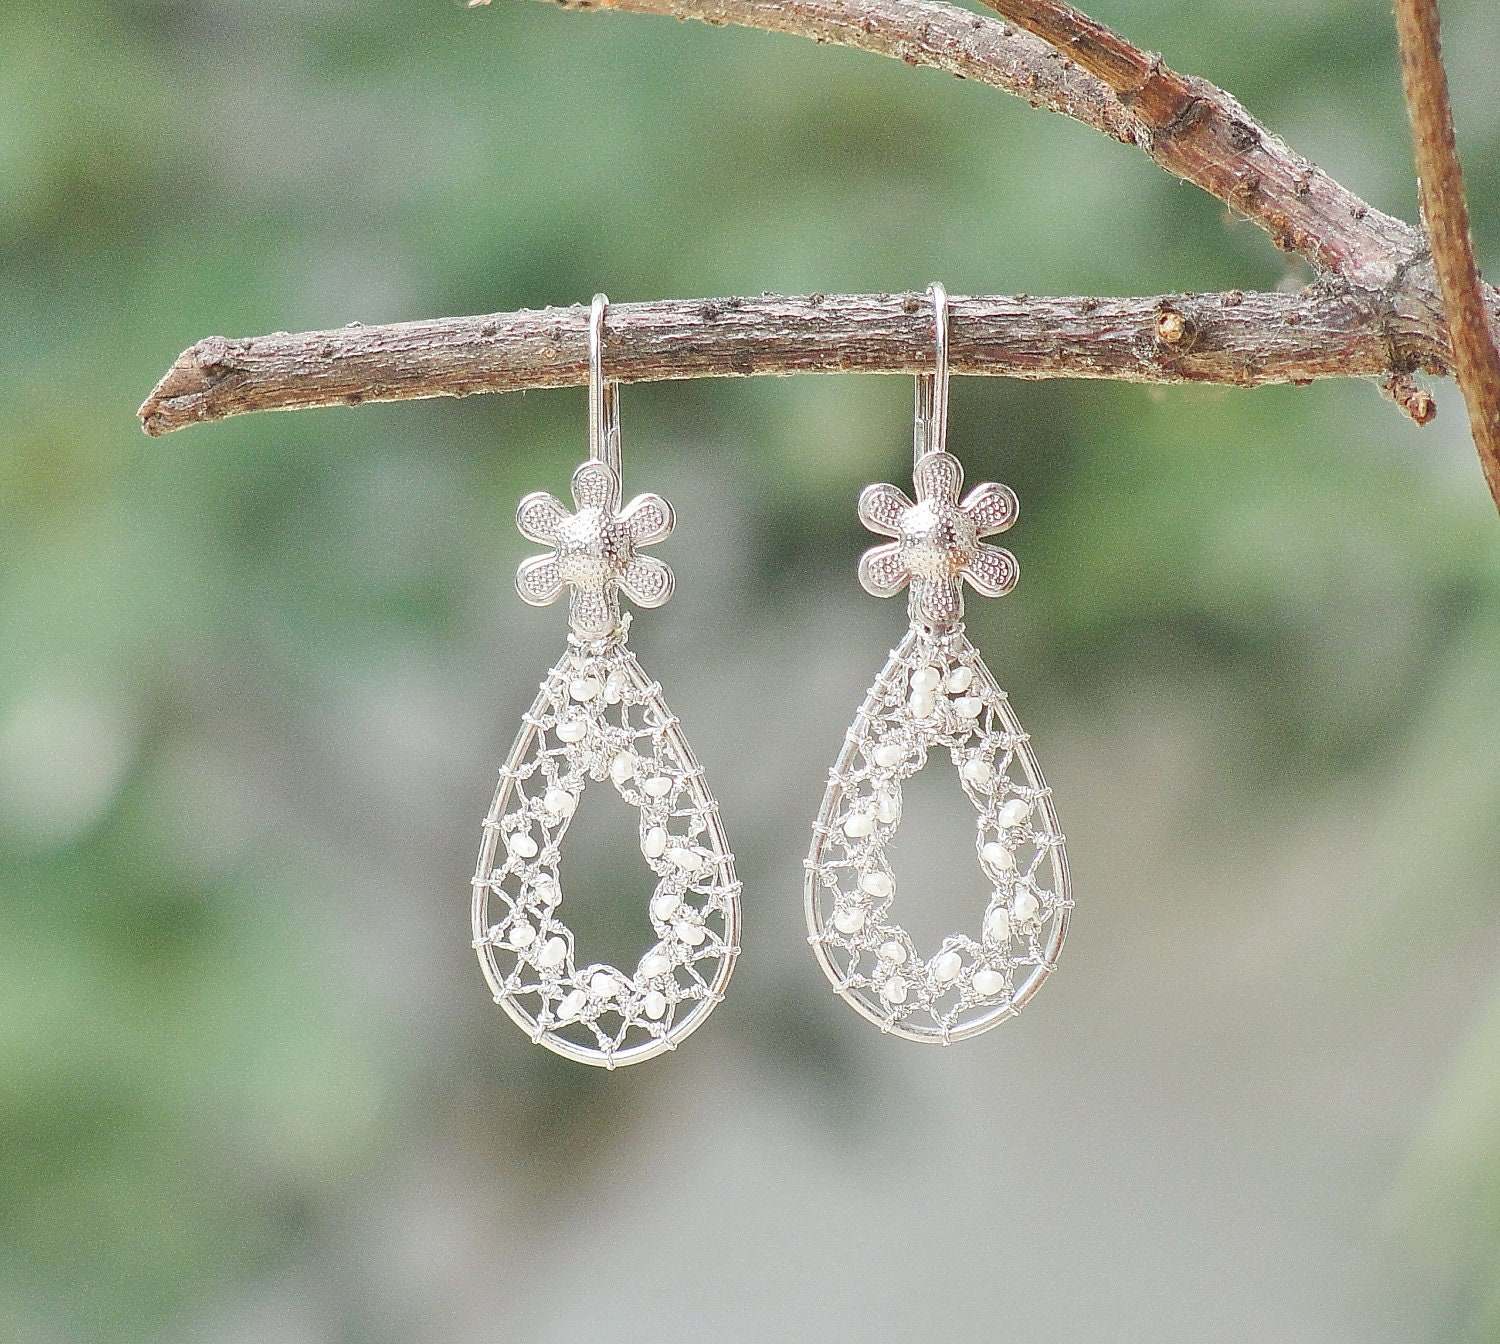 Drops of Dreams - Needle Lace Earrings with Tiny Sweet Water Pearls - StaroftheEast